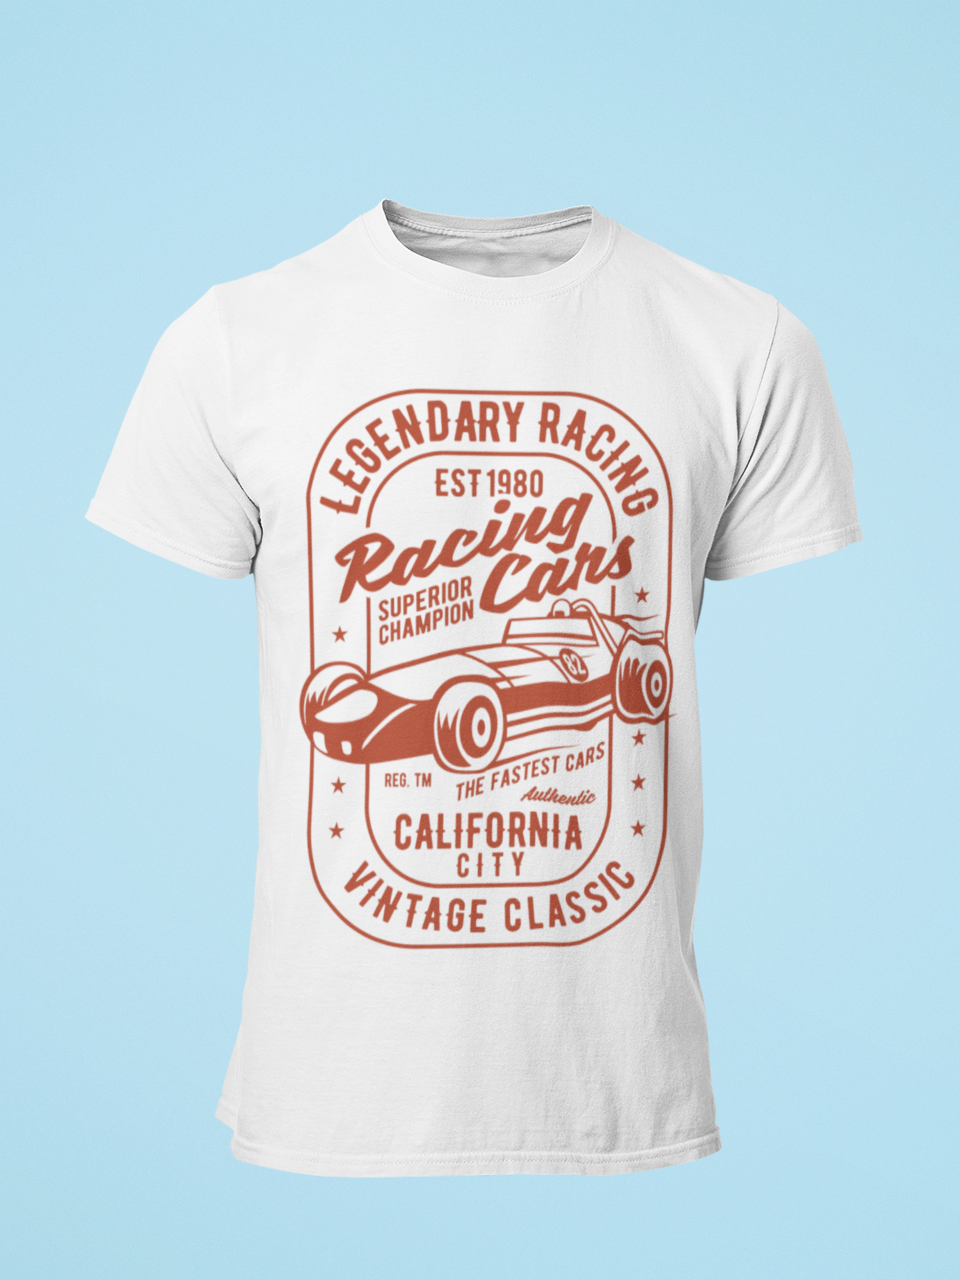 Racing Cars - Men's Half Sleeve T-Shirt - White